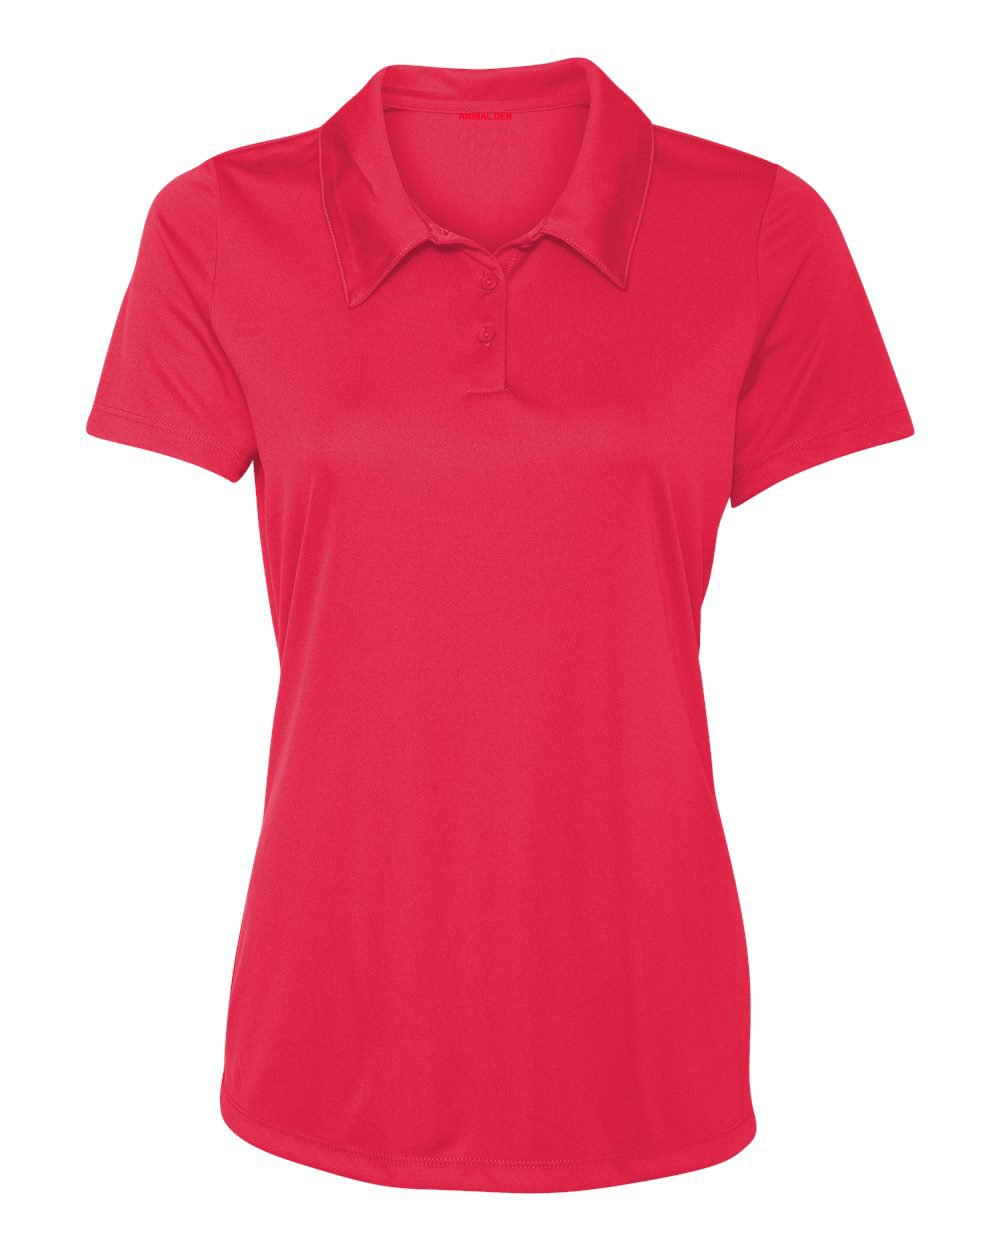 Animal Den Women's Dry-Fit Golf Polo Shirts 3-Button Golf Polo's in 20 Colors XS-3XL Shirt RED-XS